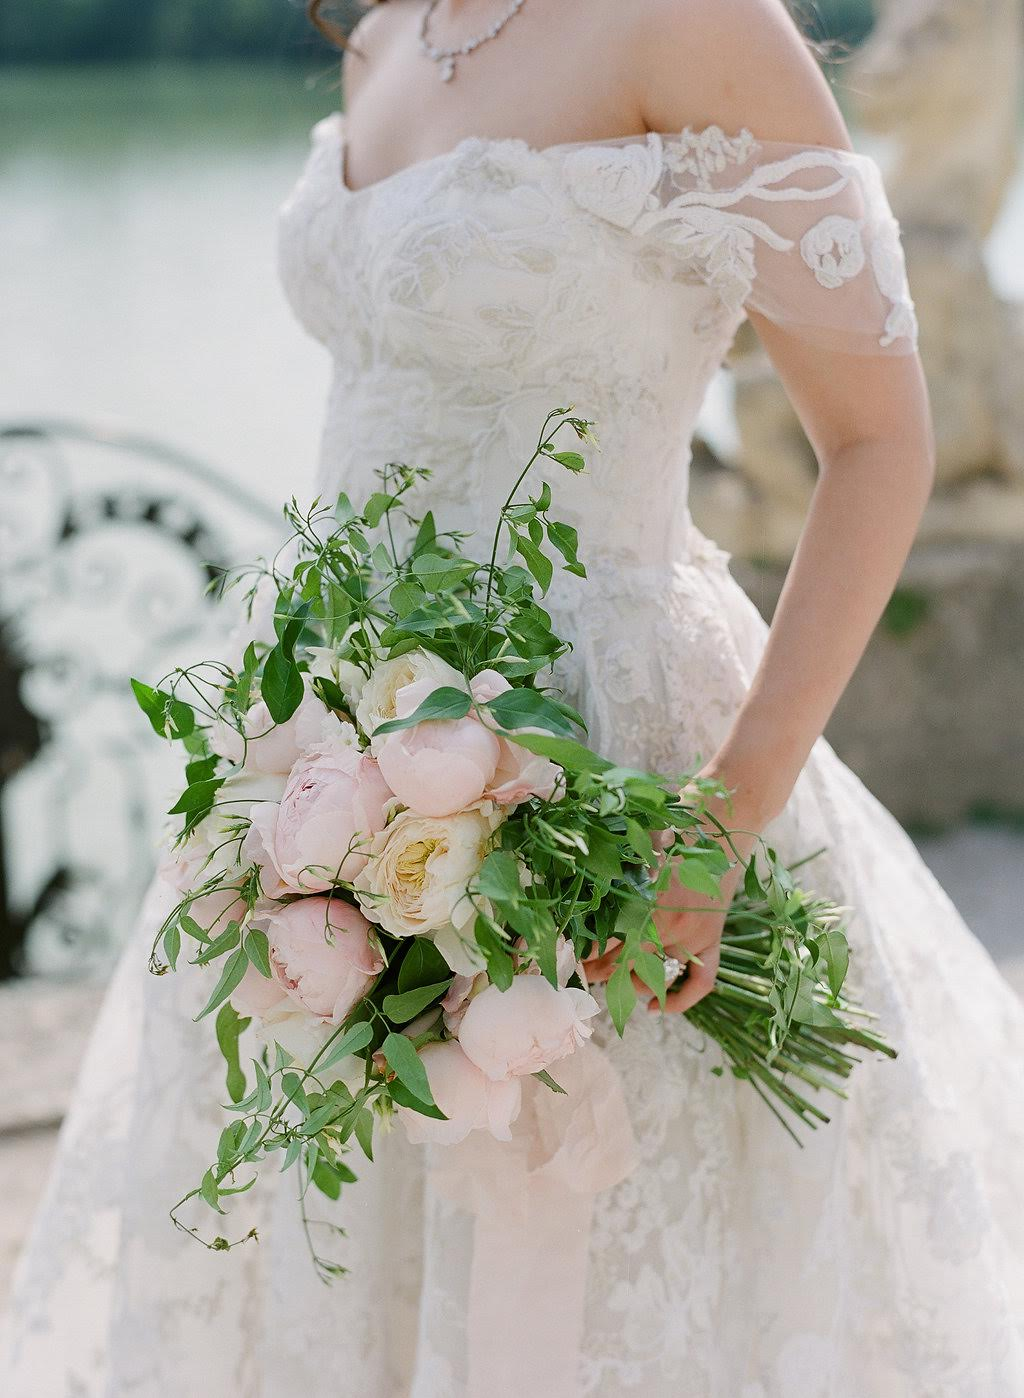 Greg_Finck_AVeryBelovedWedding_Salzburg_